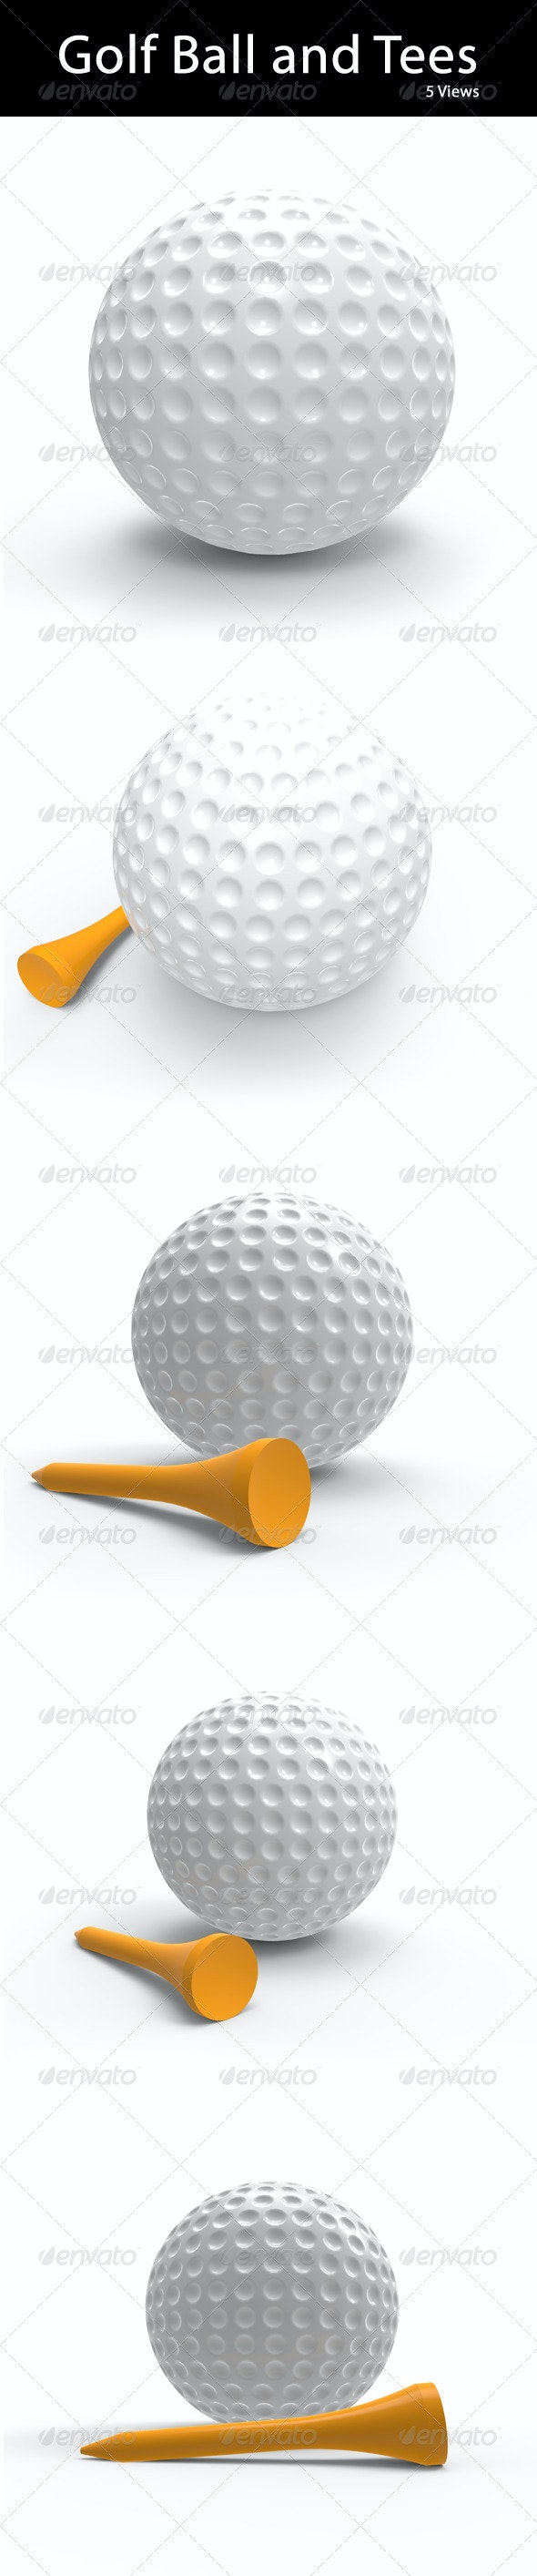 Golf ball and tees - 3D Backgrounds